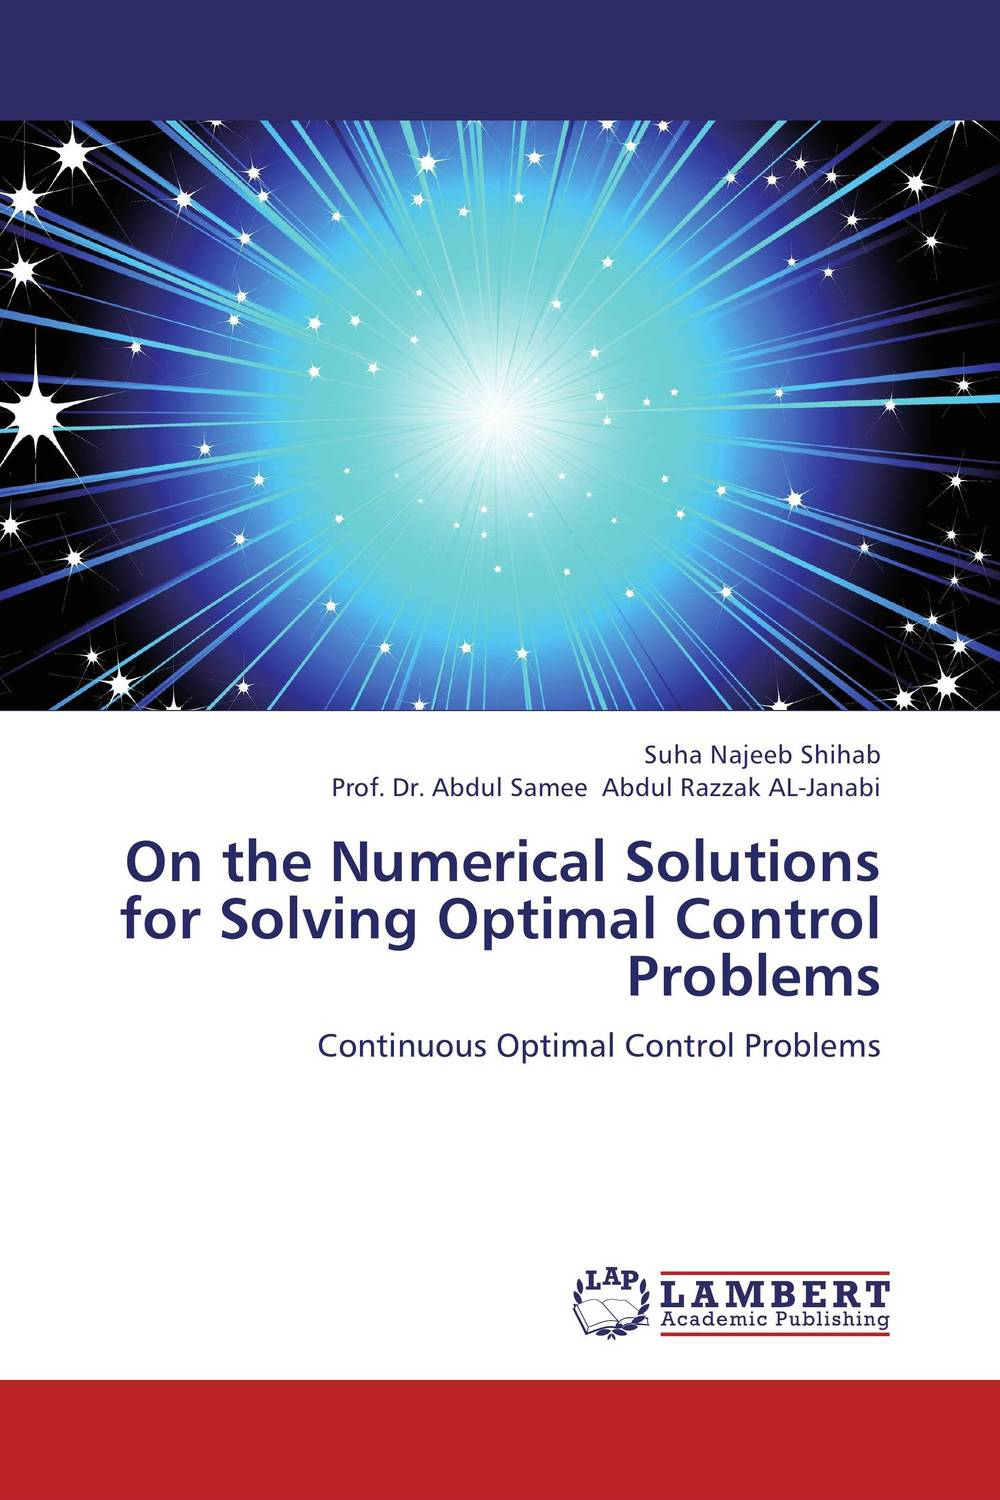 On the Numerical Solutions for Solving Optimal Control Problems kenneth rosen d investing in income properties the big six formula for achieving wealth in real estate